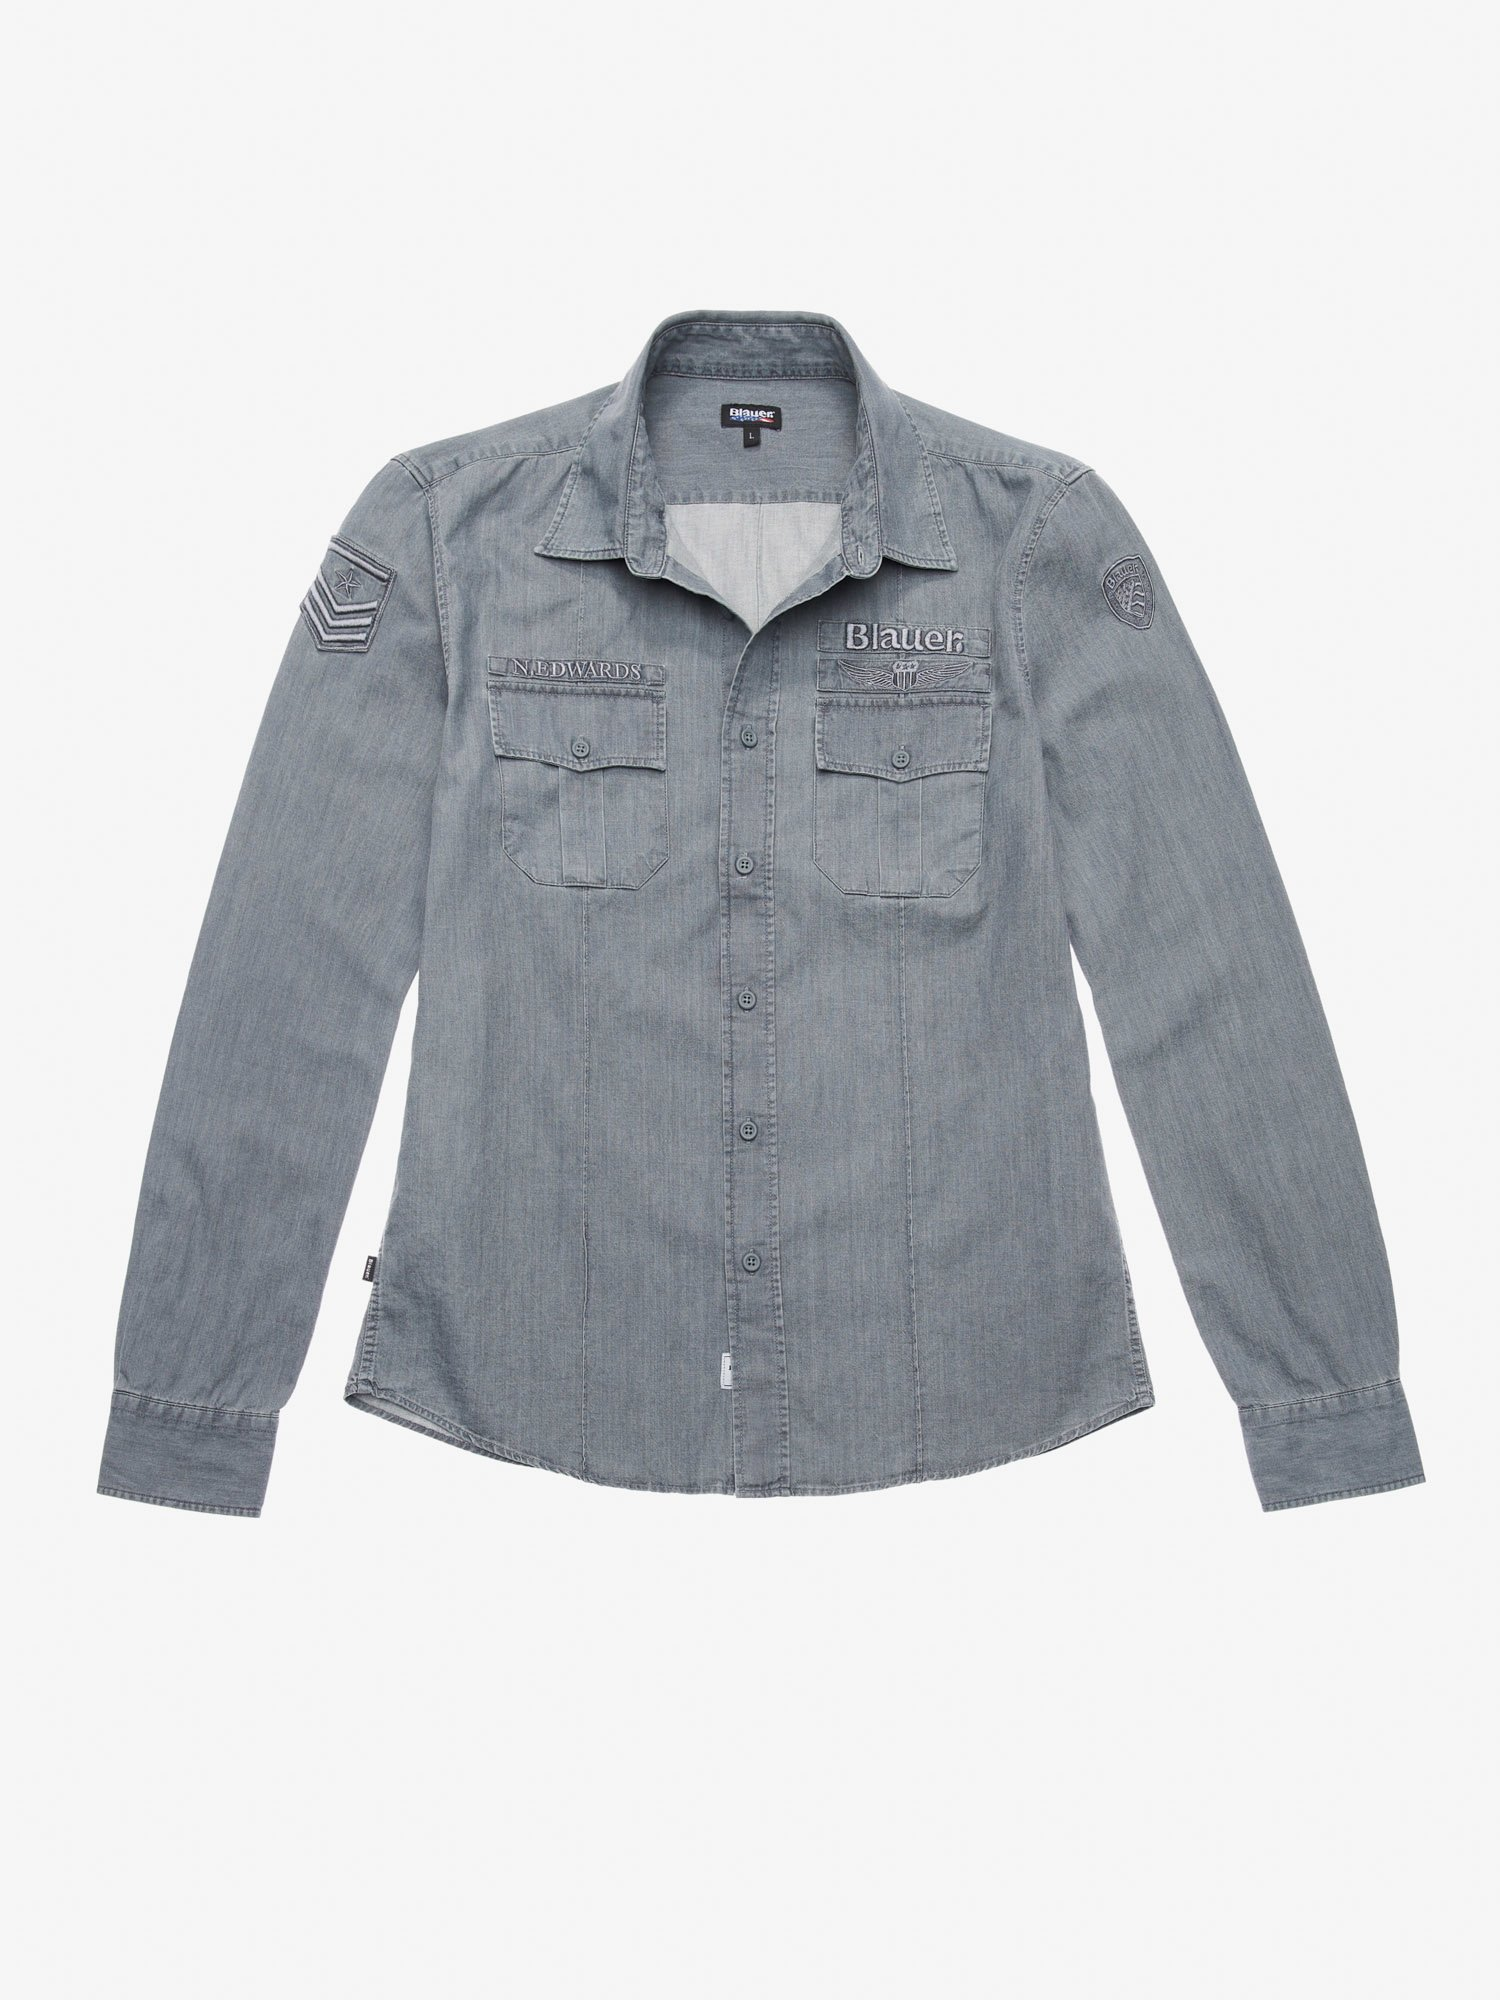 AVIATOR SHIRT - Blauer